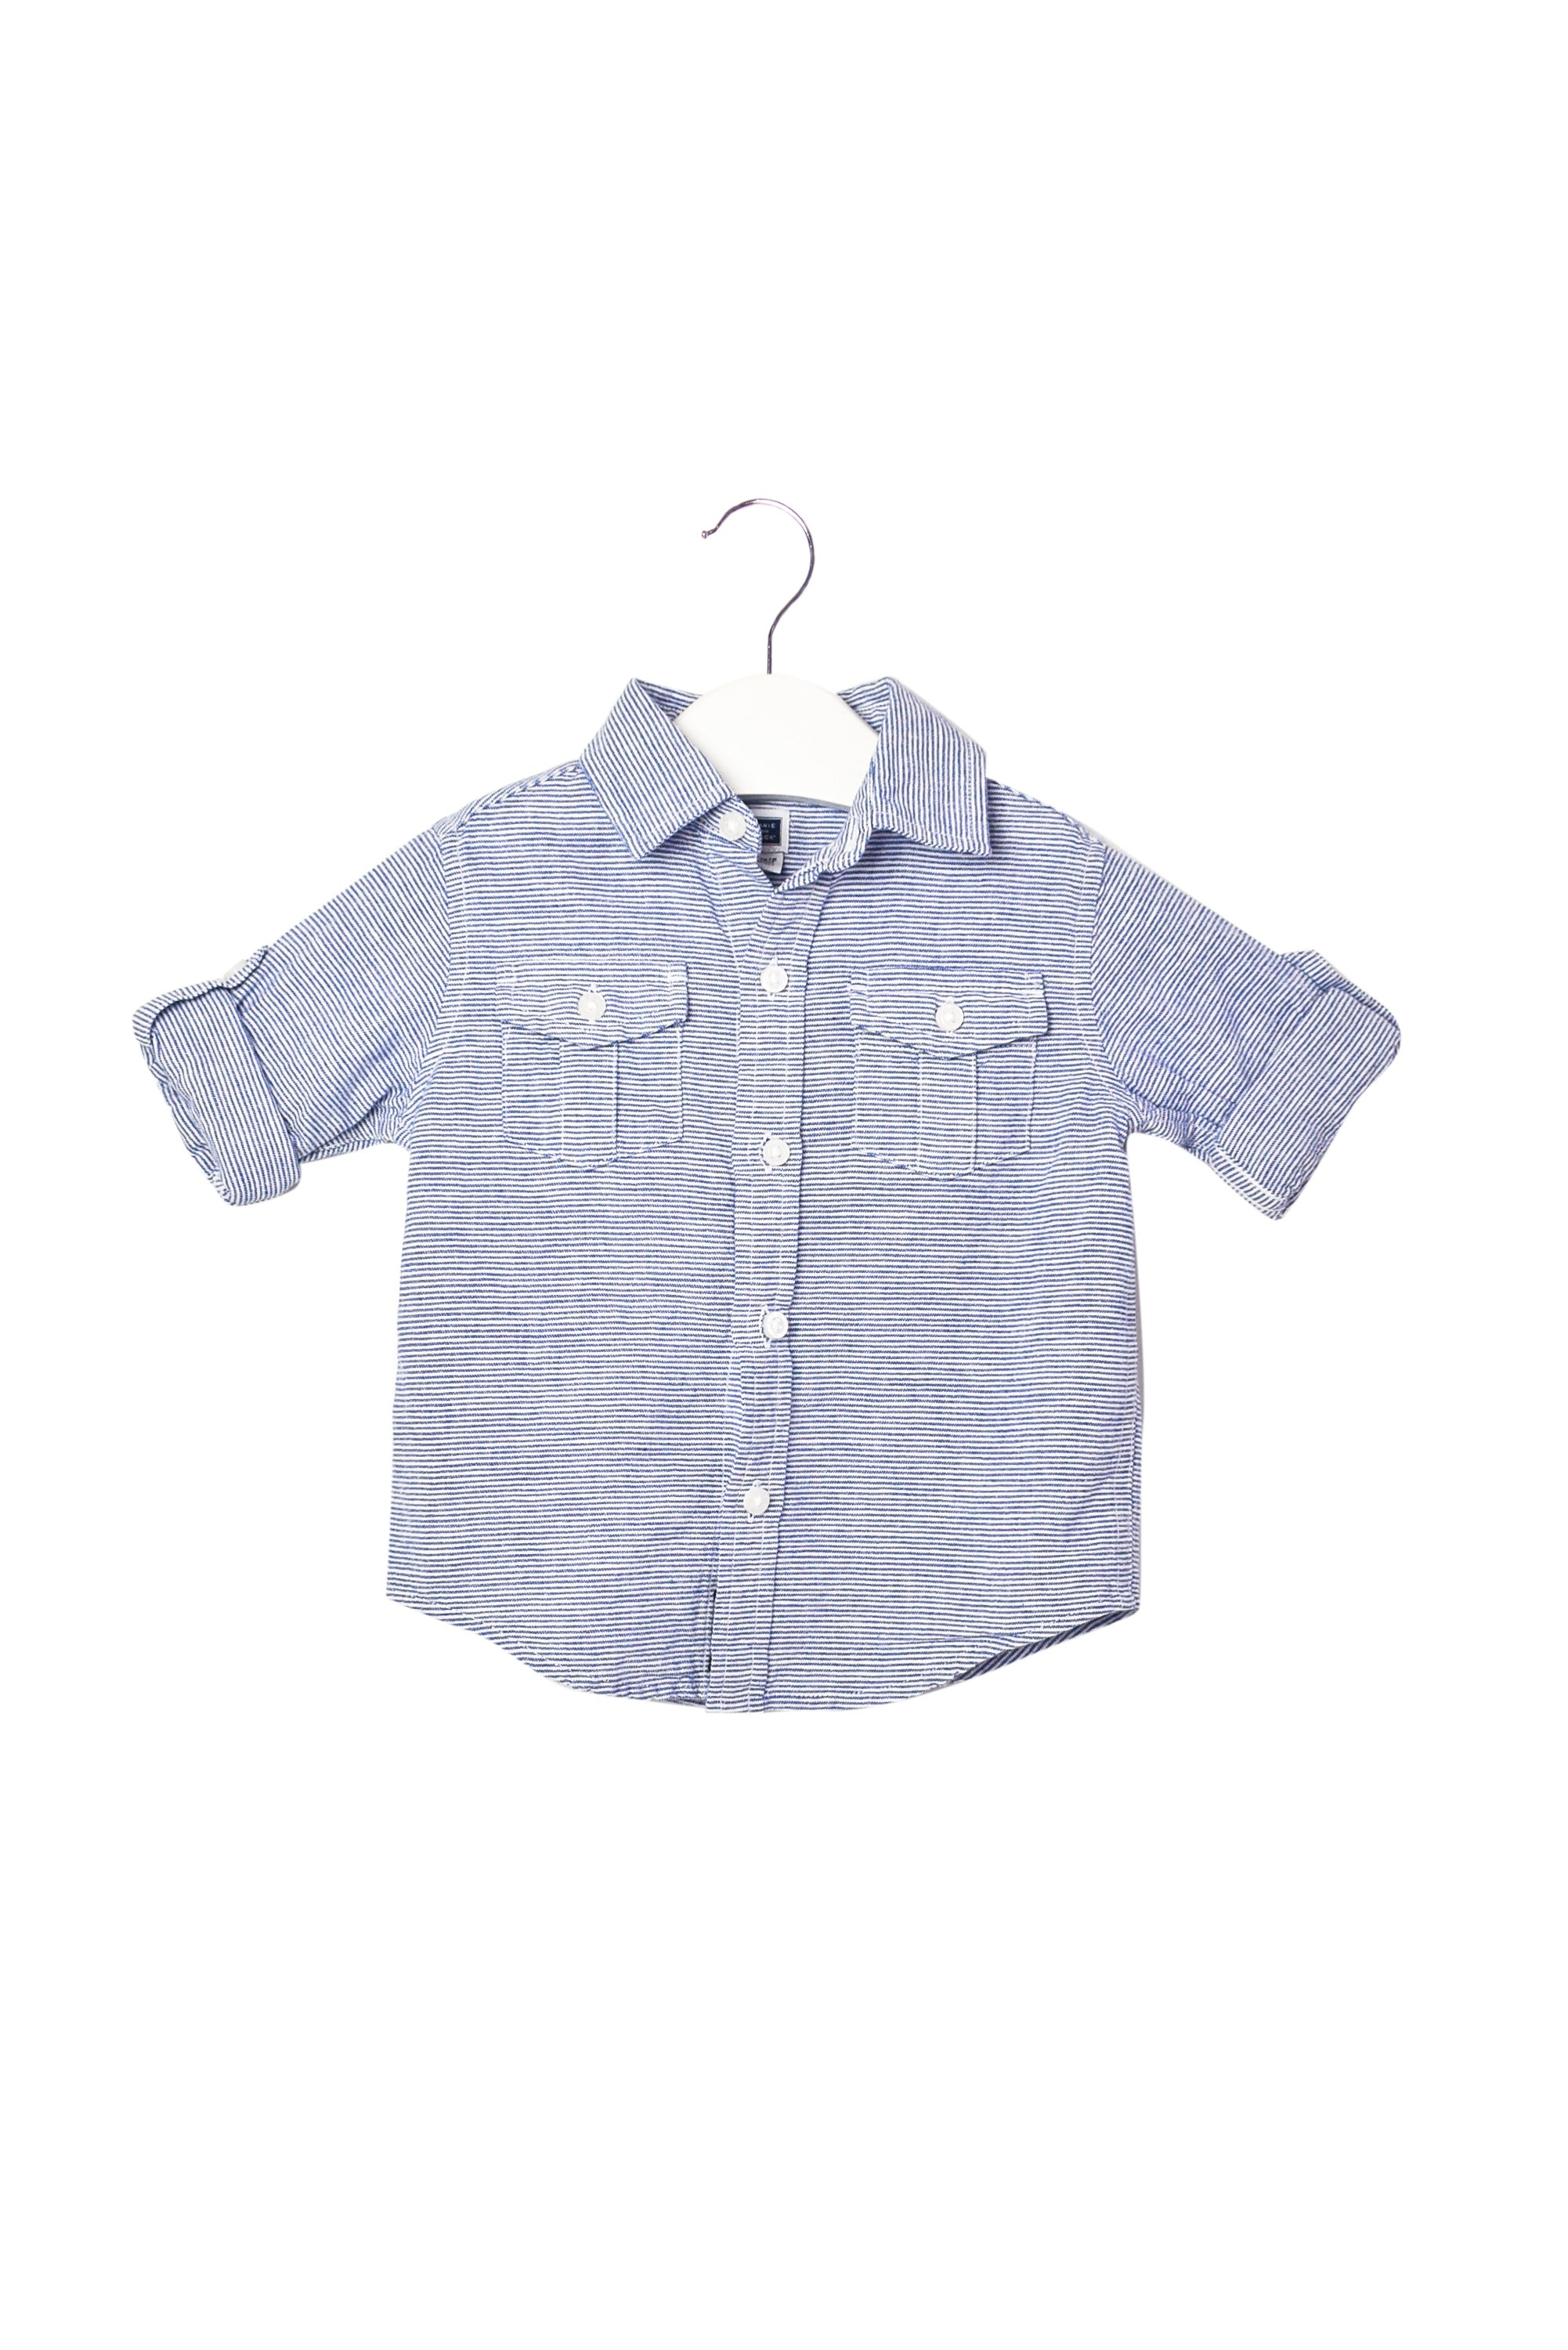 10006309 Janie and Jack Baby~Shirt 6-12M at Retykle